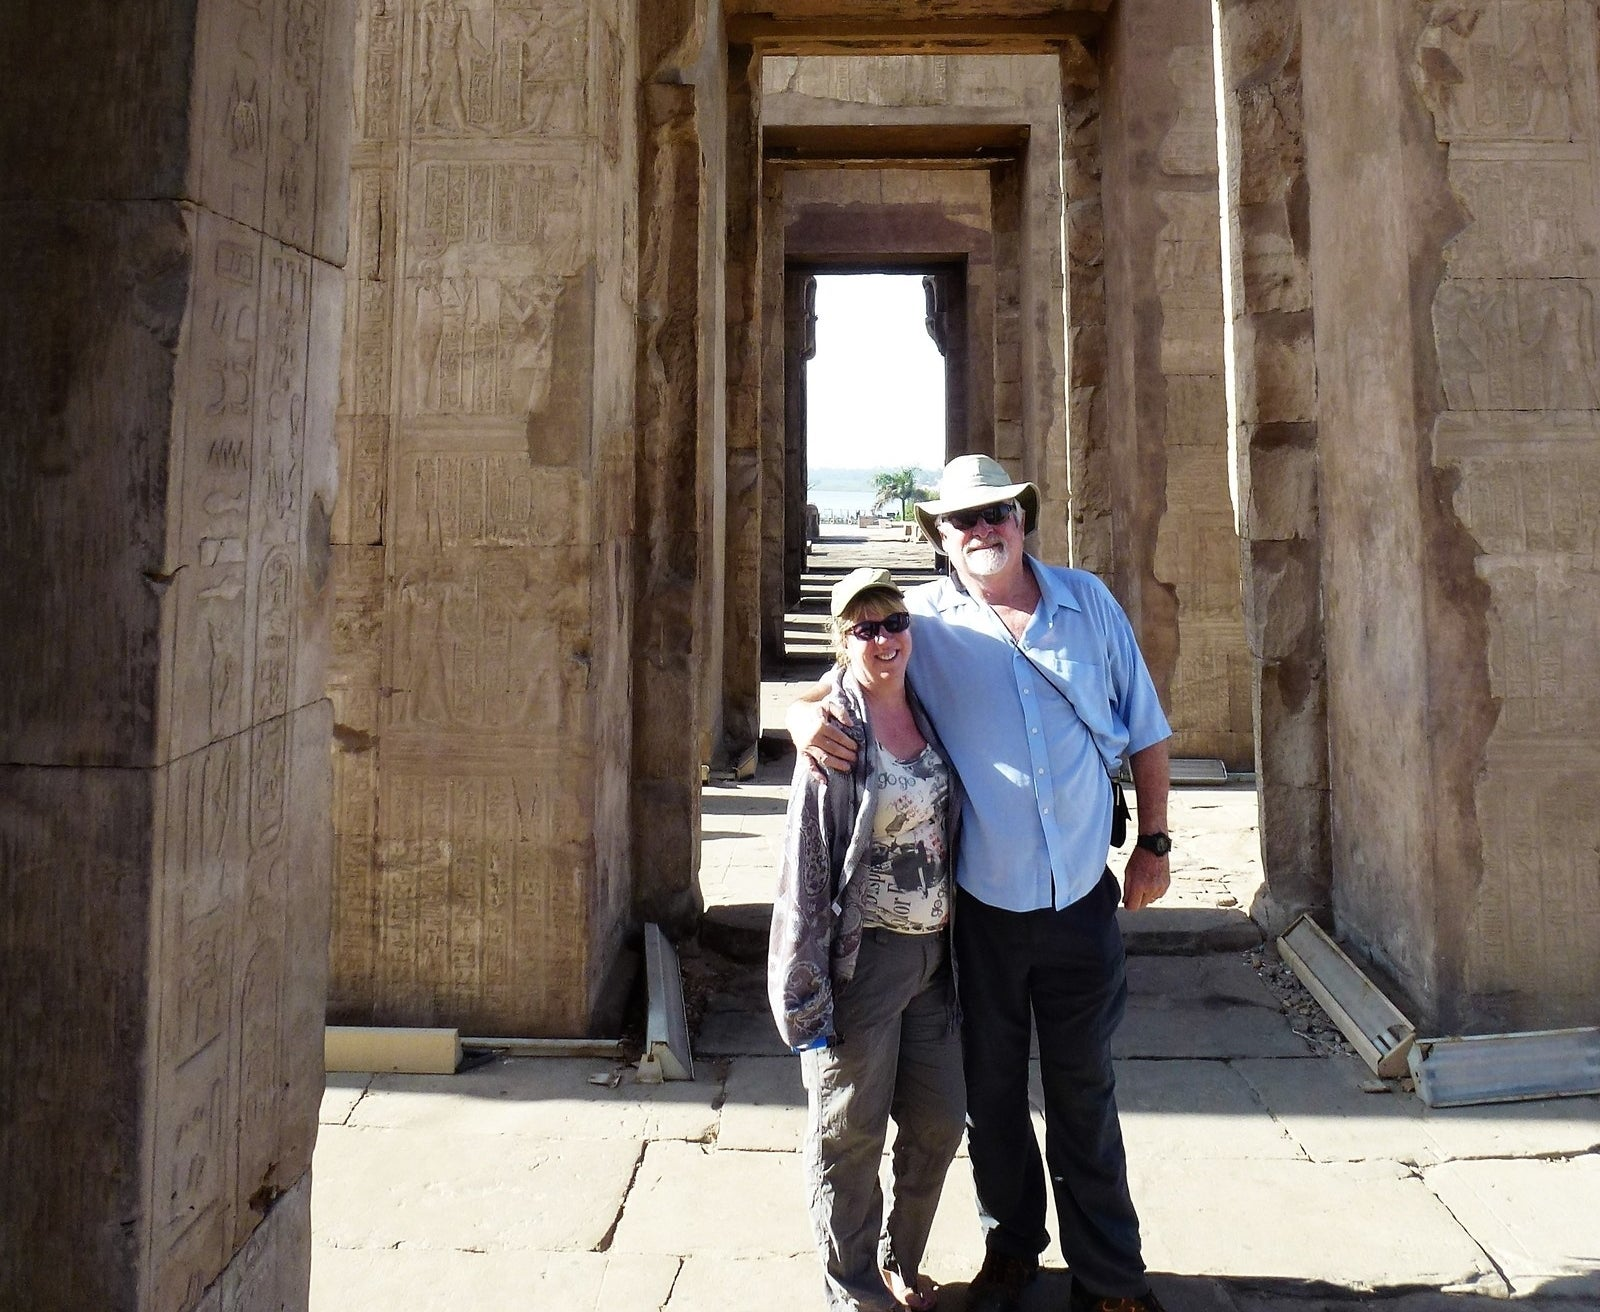 Steffanie Strathdee and Tom Patterson visiting Egyptian pyramids